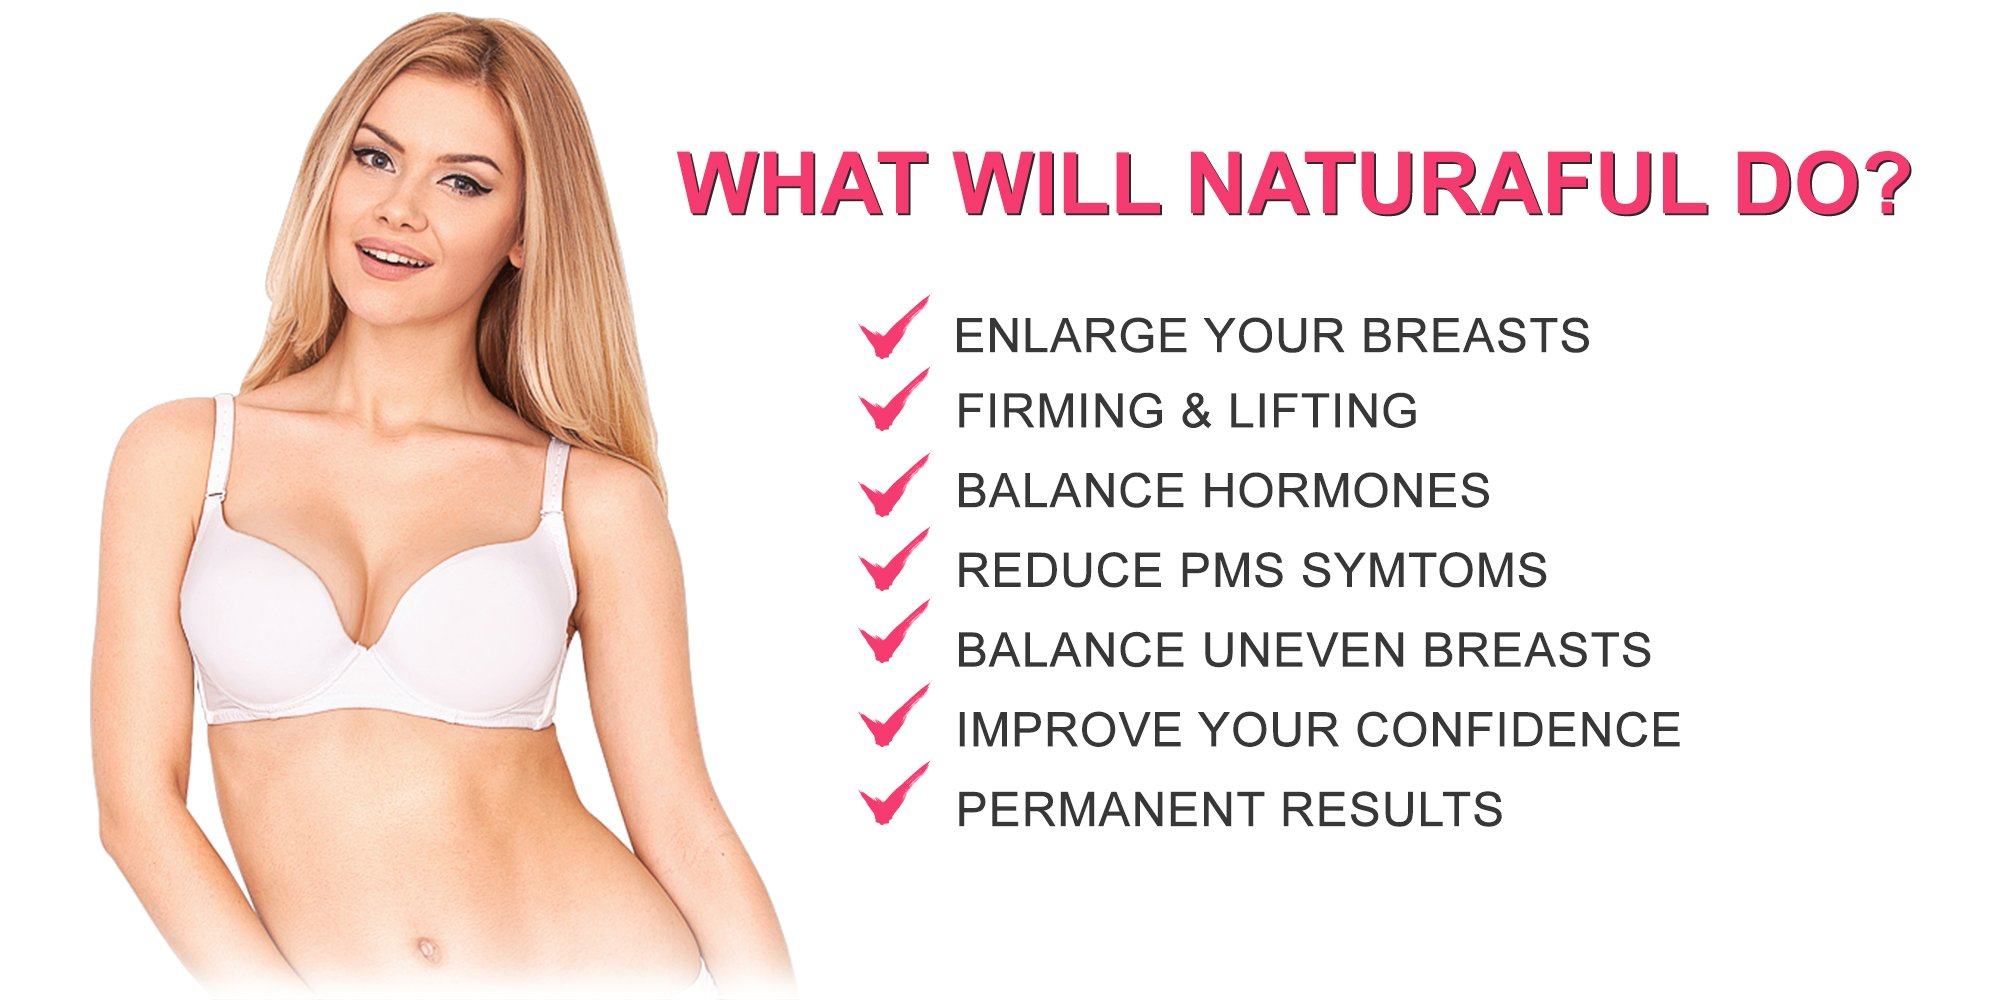 NATURAFUL - (5 JAR SUPPLY) TOP RATED Breast Enhancement Cream - Natural Breast Enlargement, Firming and Lifting Cream | Hormone Balancing, Made from Plant Extracts, Trusted by Over 100,000 Users by Naturaful (Image #4)